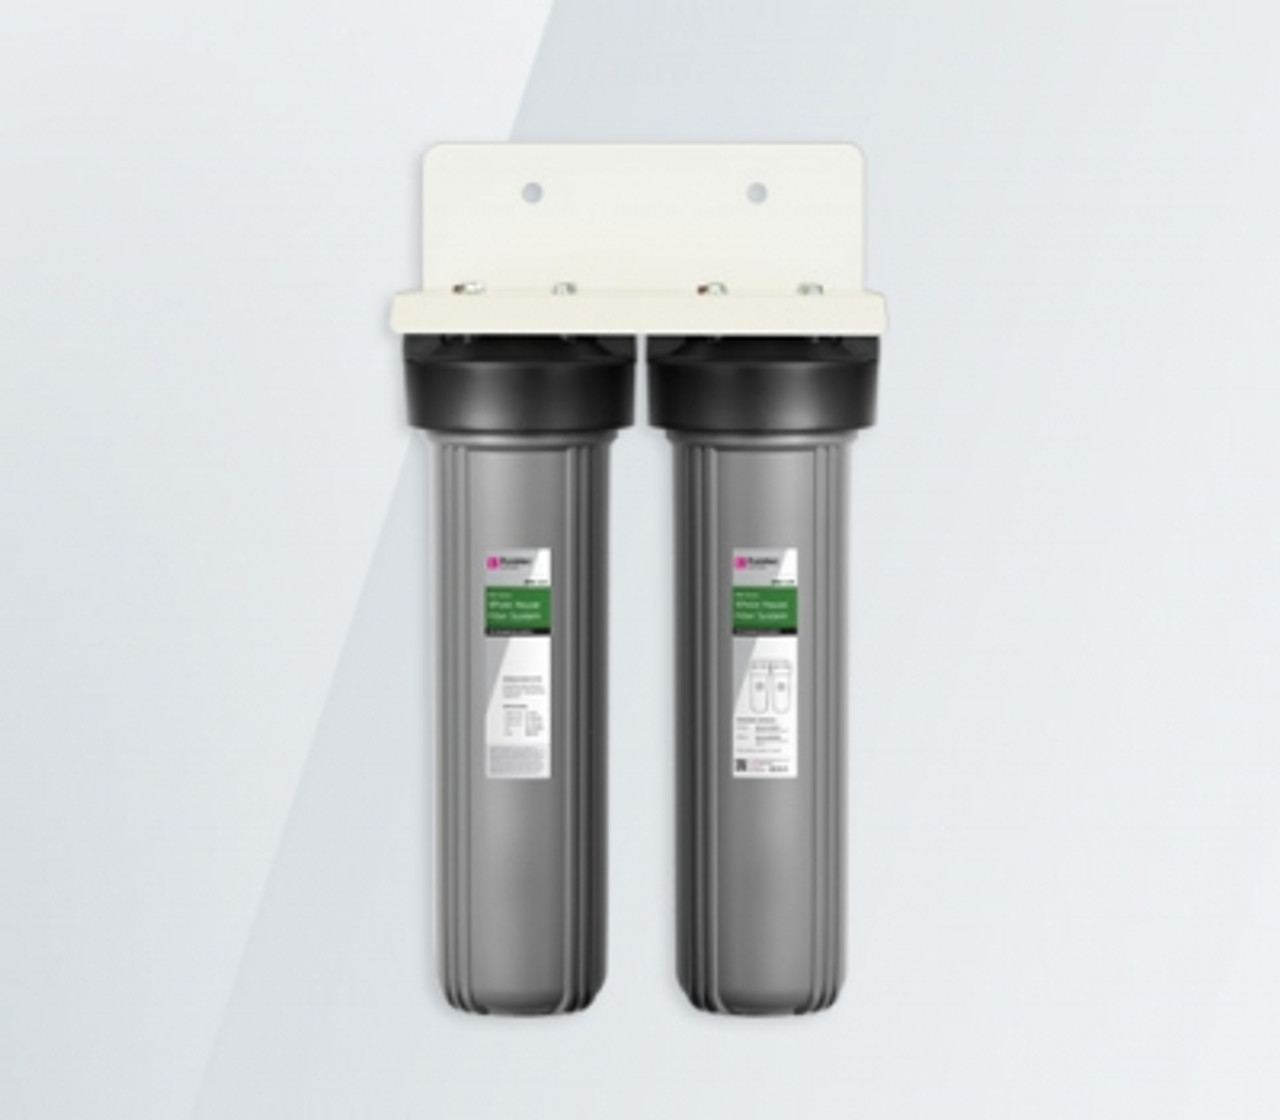 Puretec Ecotrol EM2-110 series high flow dual whole house water filter